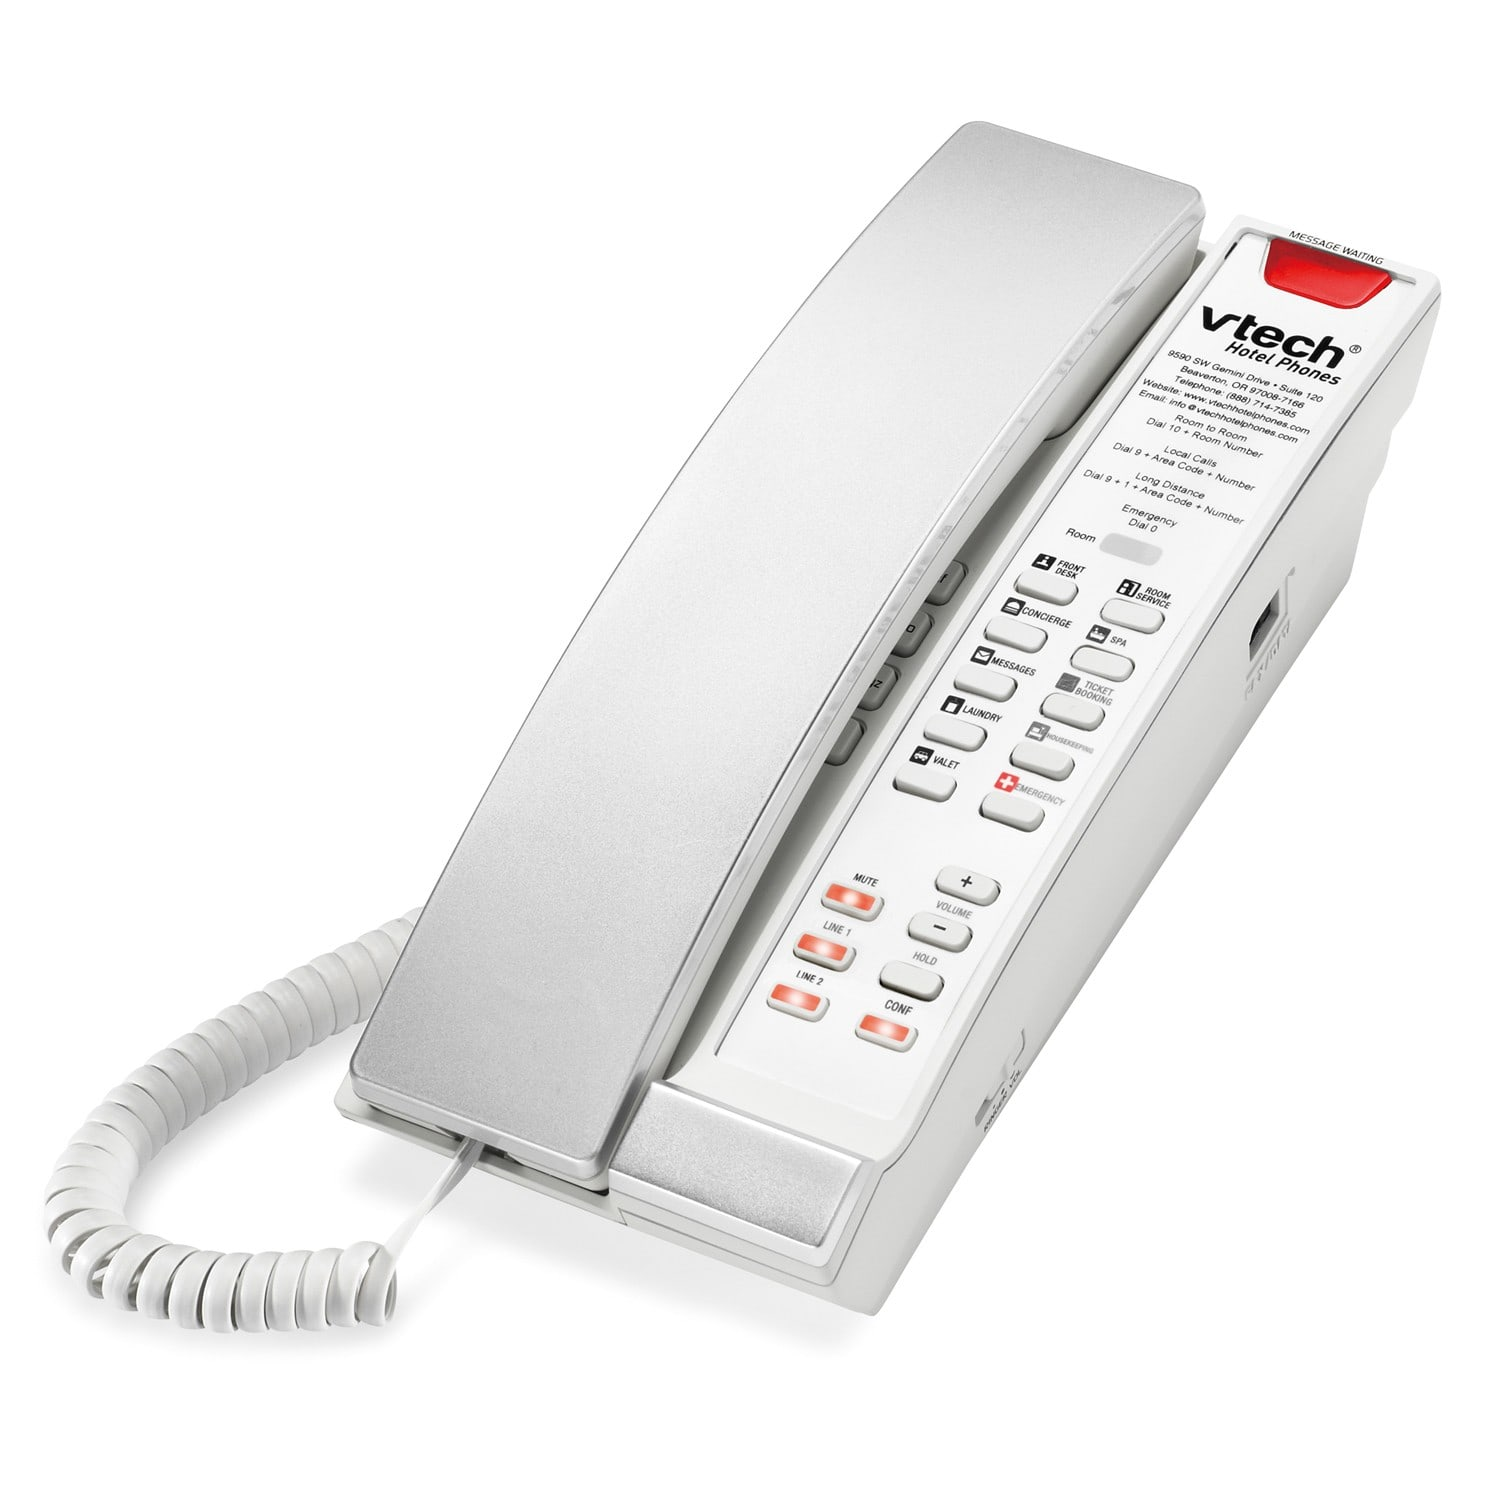 Image of 2-Line Contemporary Analog Petite Phone | A2221-L2 Silver & Pearl